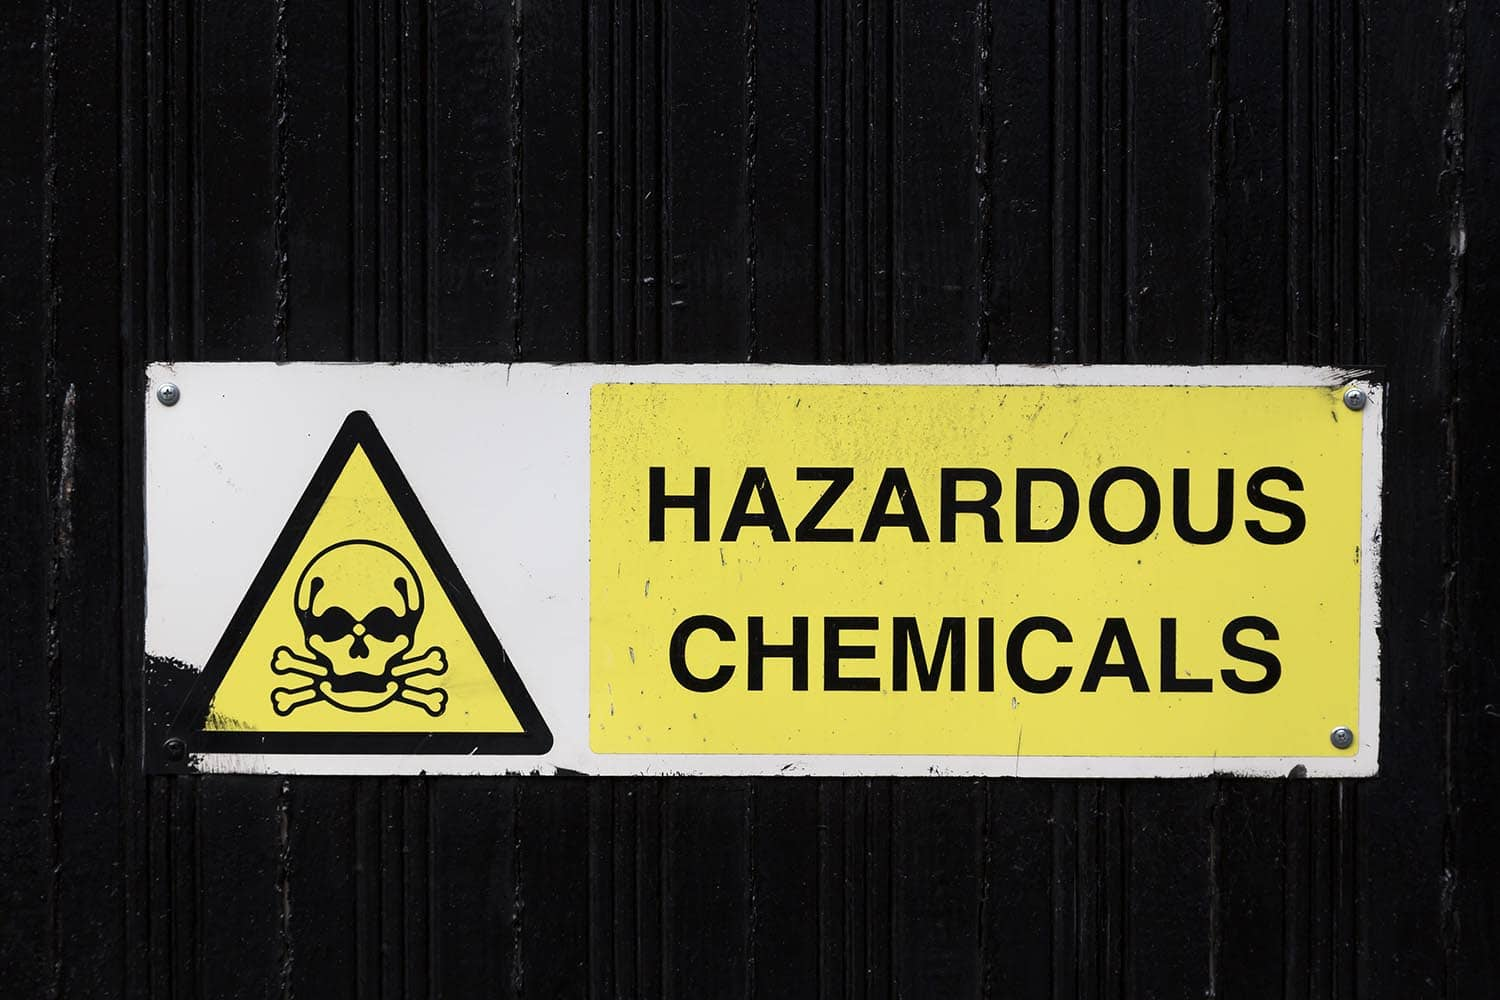 Warning for chemicals